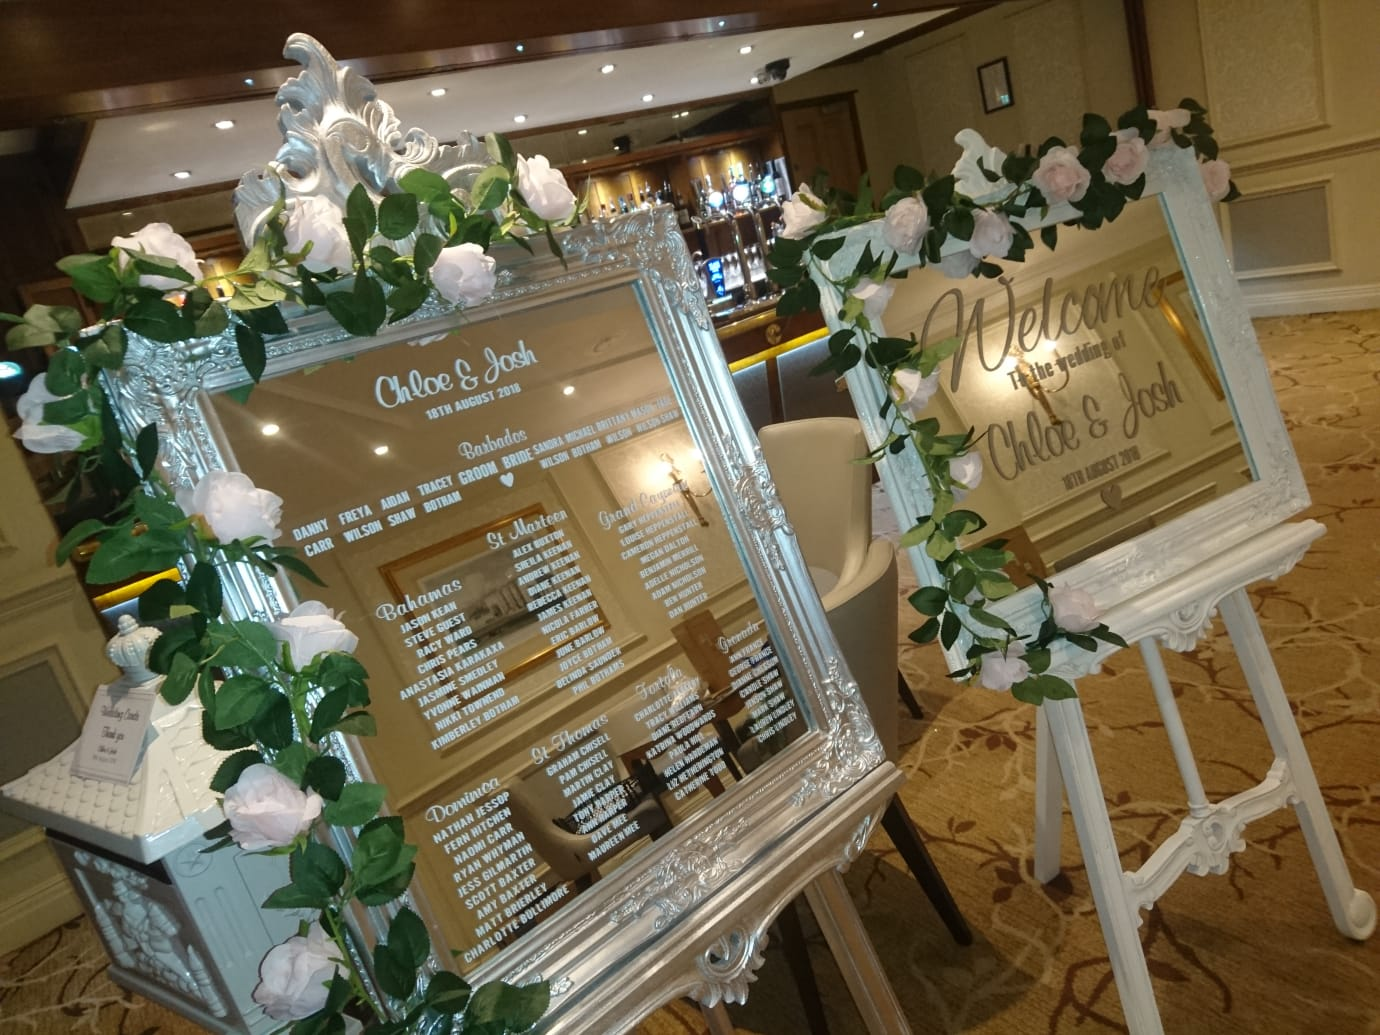 Vinyl table plan & welcome sign